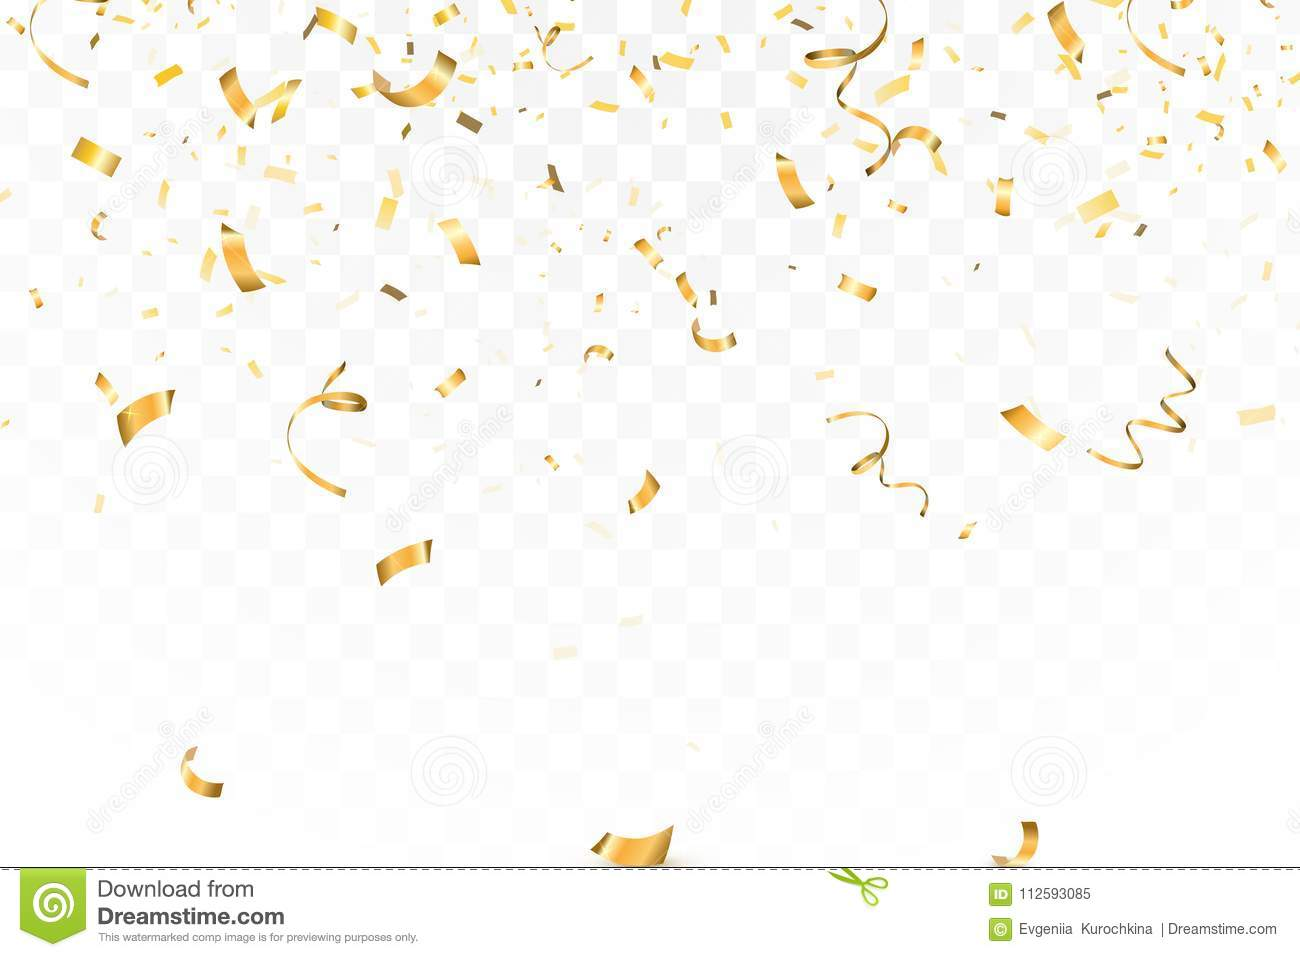 Falling bright Gold Glitter confetti celebration, serpentine isolated on transparent background. New year, birthday